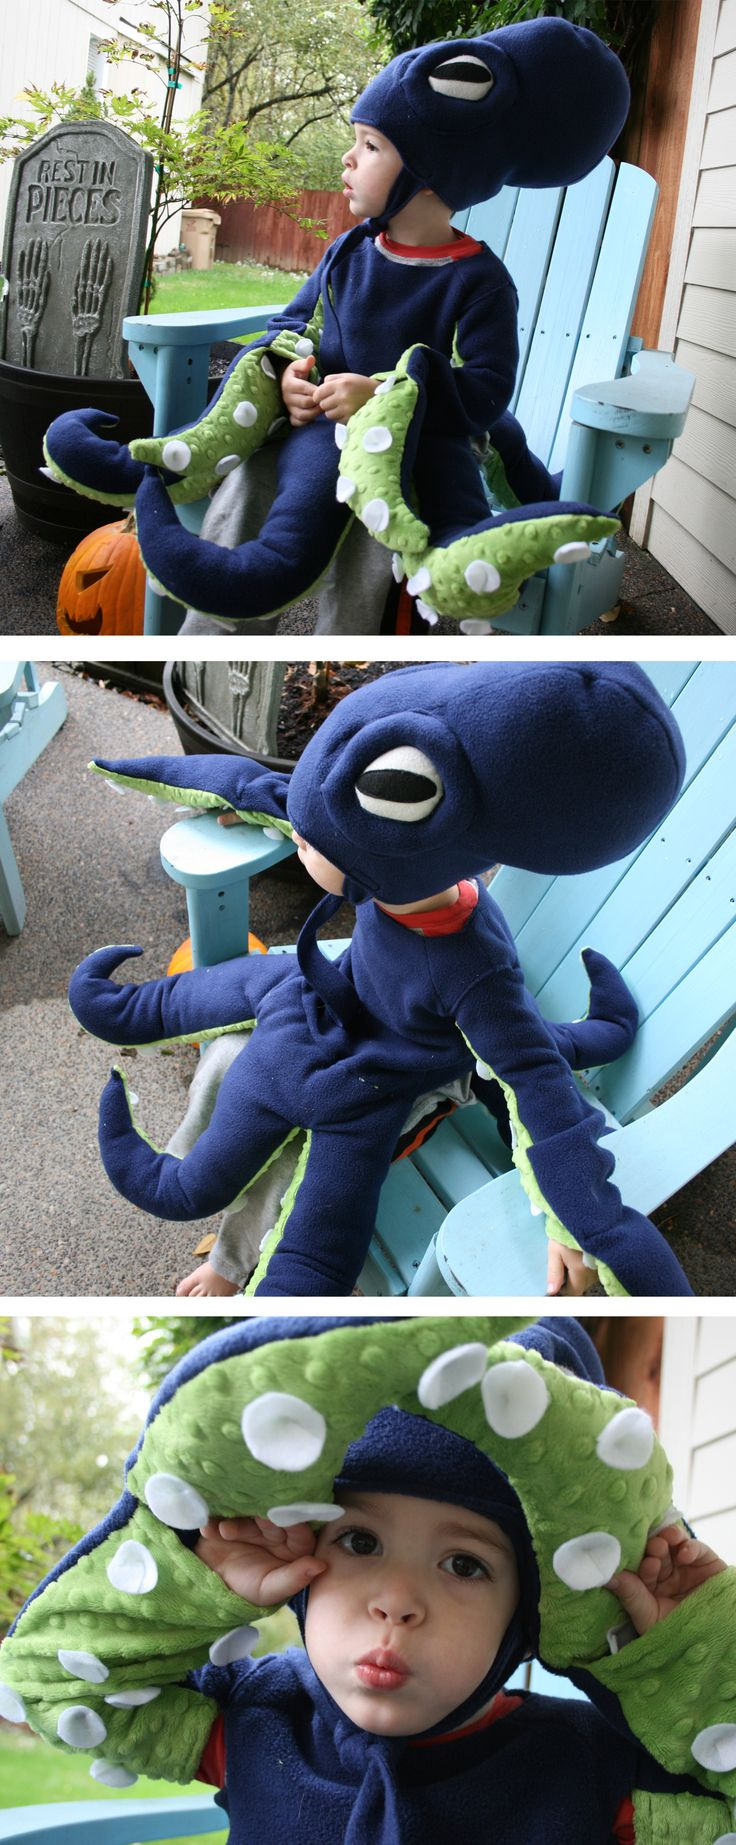 2013 Octopus Costume - SimplyMaeB                                                                                                                                                                                 More                                                                                                                                                                                 Más